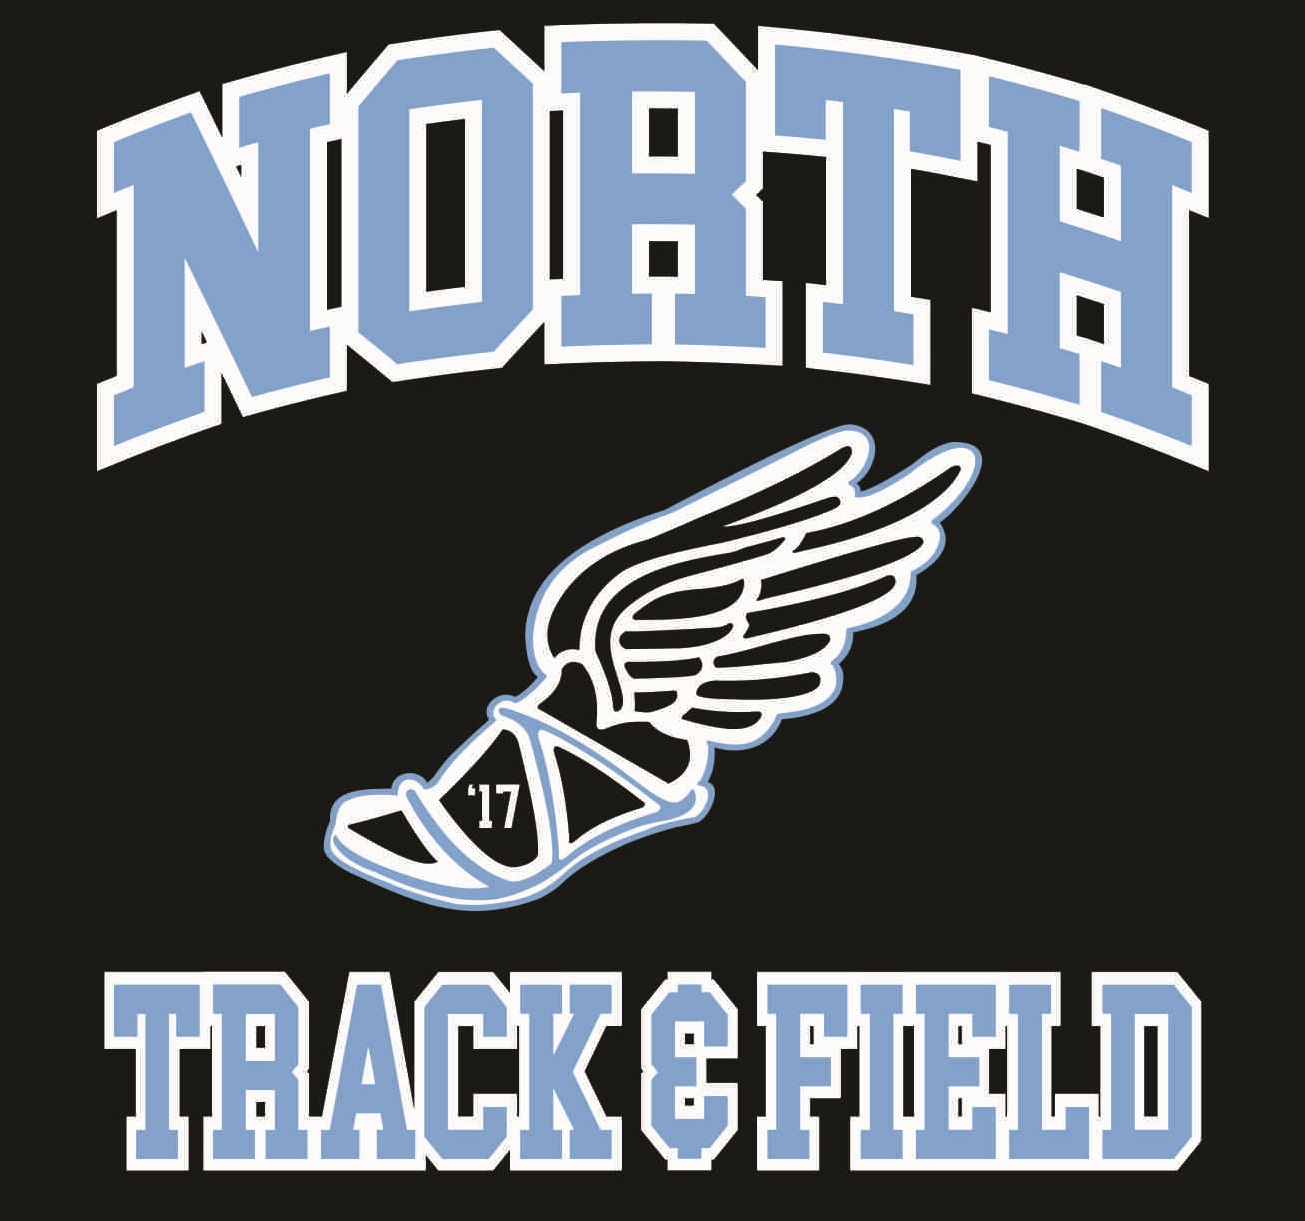 ec-north-track-apparel.jpg